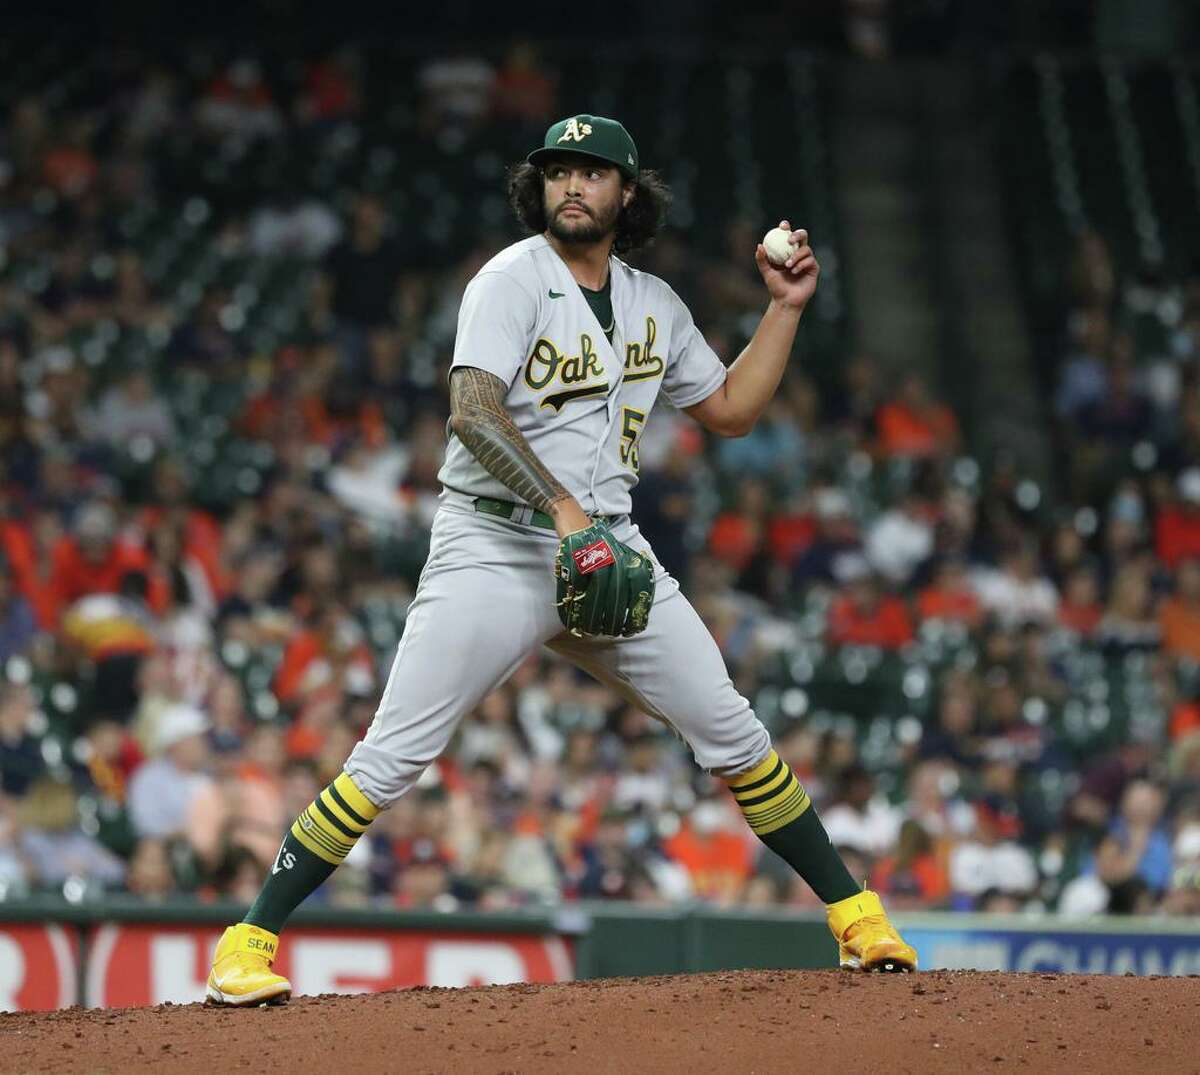 Oakland Athletics starting pitcher Sean Manaea (55) hesitates between pitches to Houston Astros Marwin Gonzalez during the third inning of an MLB baseball game at Minute Maid Park, Friday, October 1, 2021, in Houston.